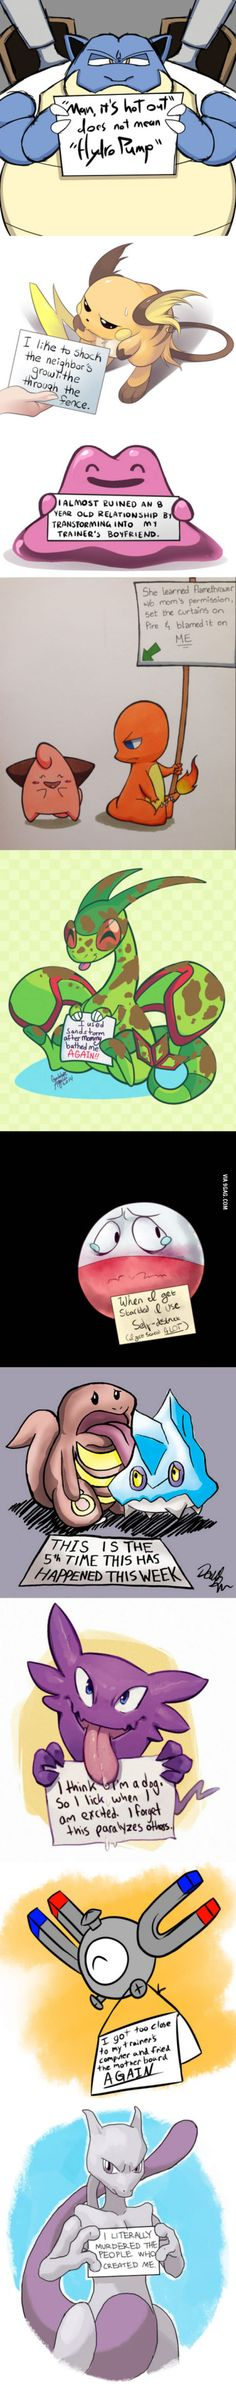 Pokemon Shaming - the last one though, hahahahaha